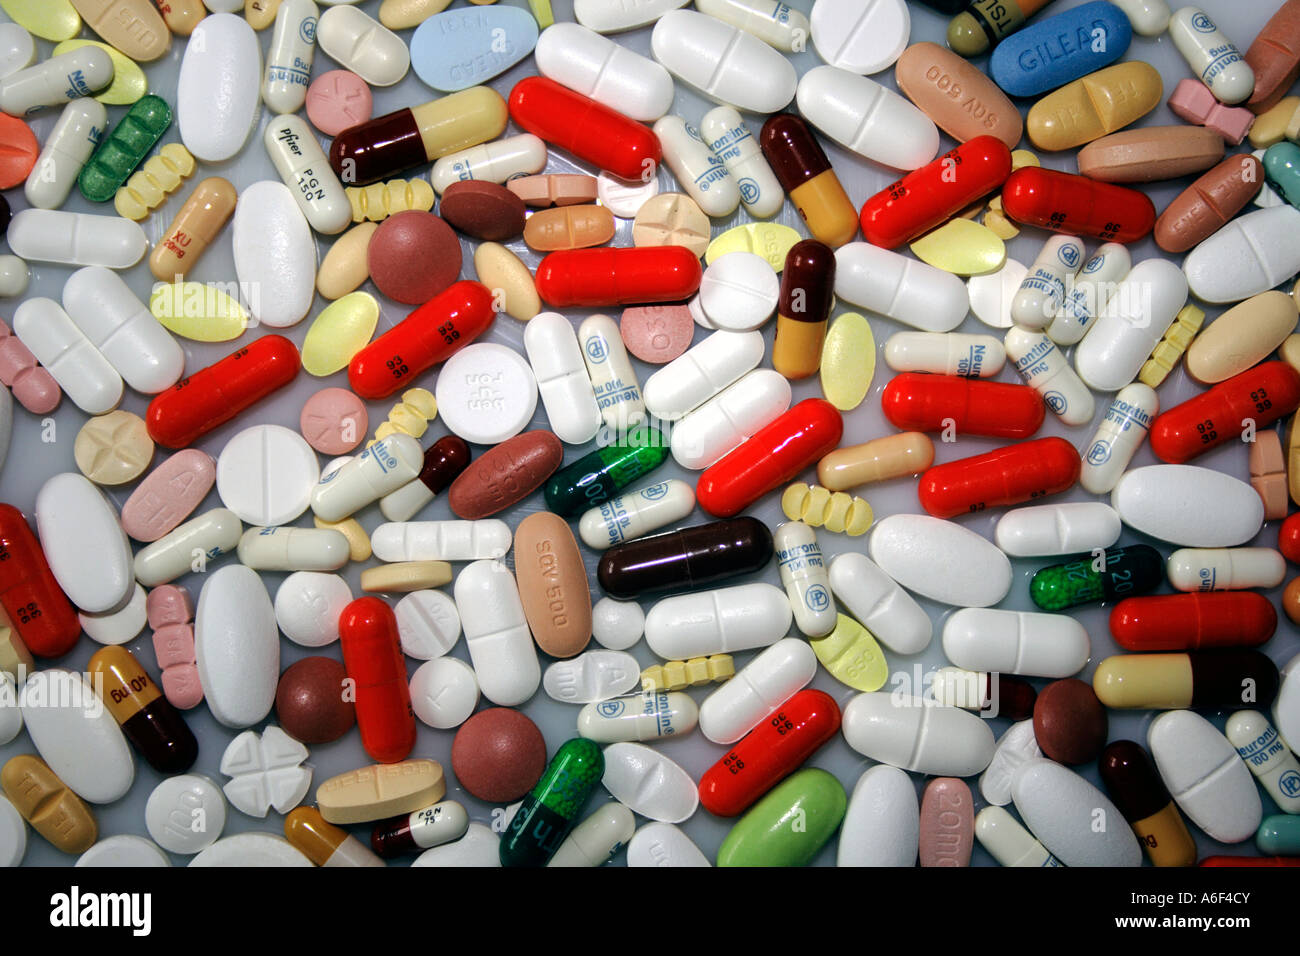 Close up of many pills. Photo by Willy Matheisl - Stock Image